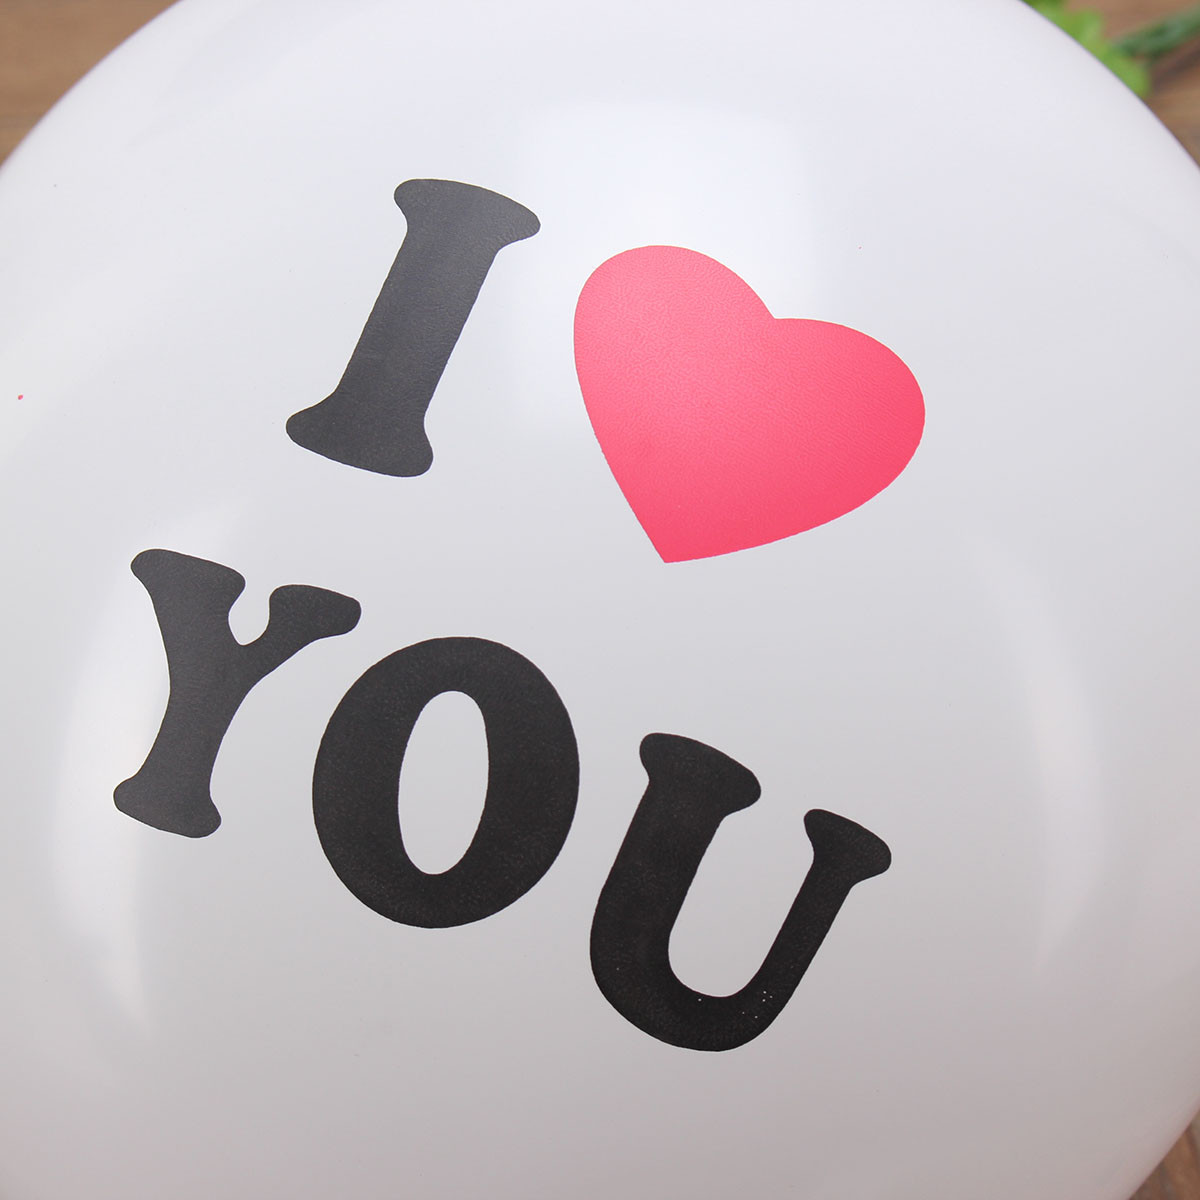 10pcs I LOVE YOU Latex Balloon Balloons Valentine Proposal Wedding Party Decoration